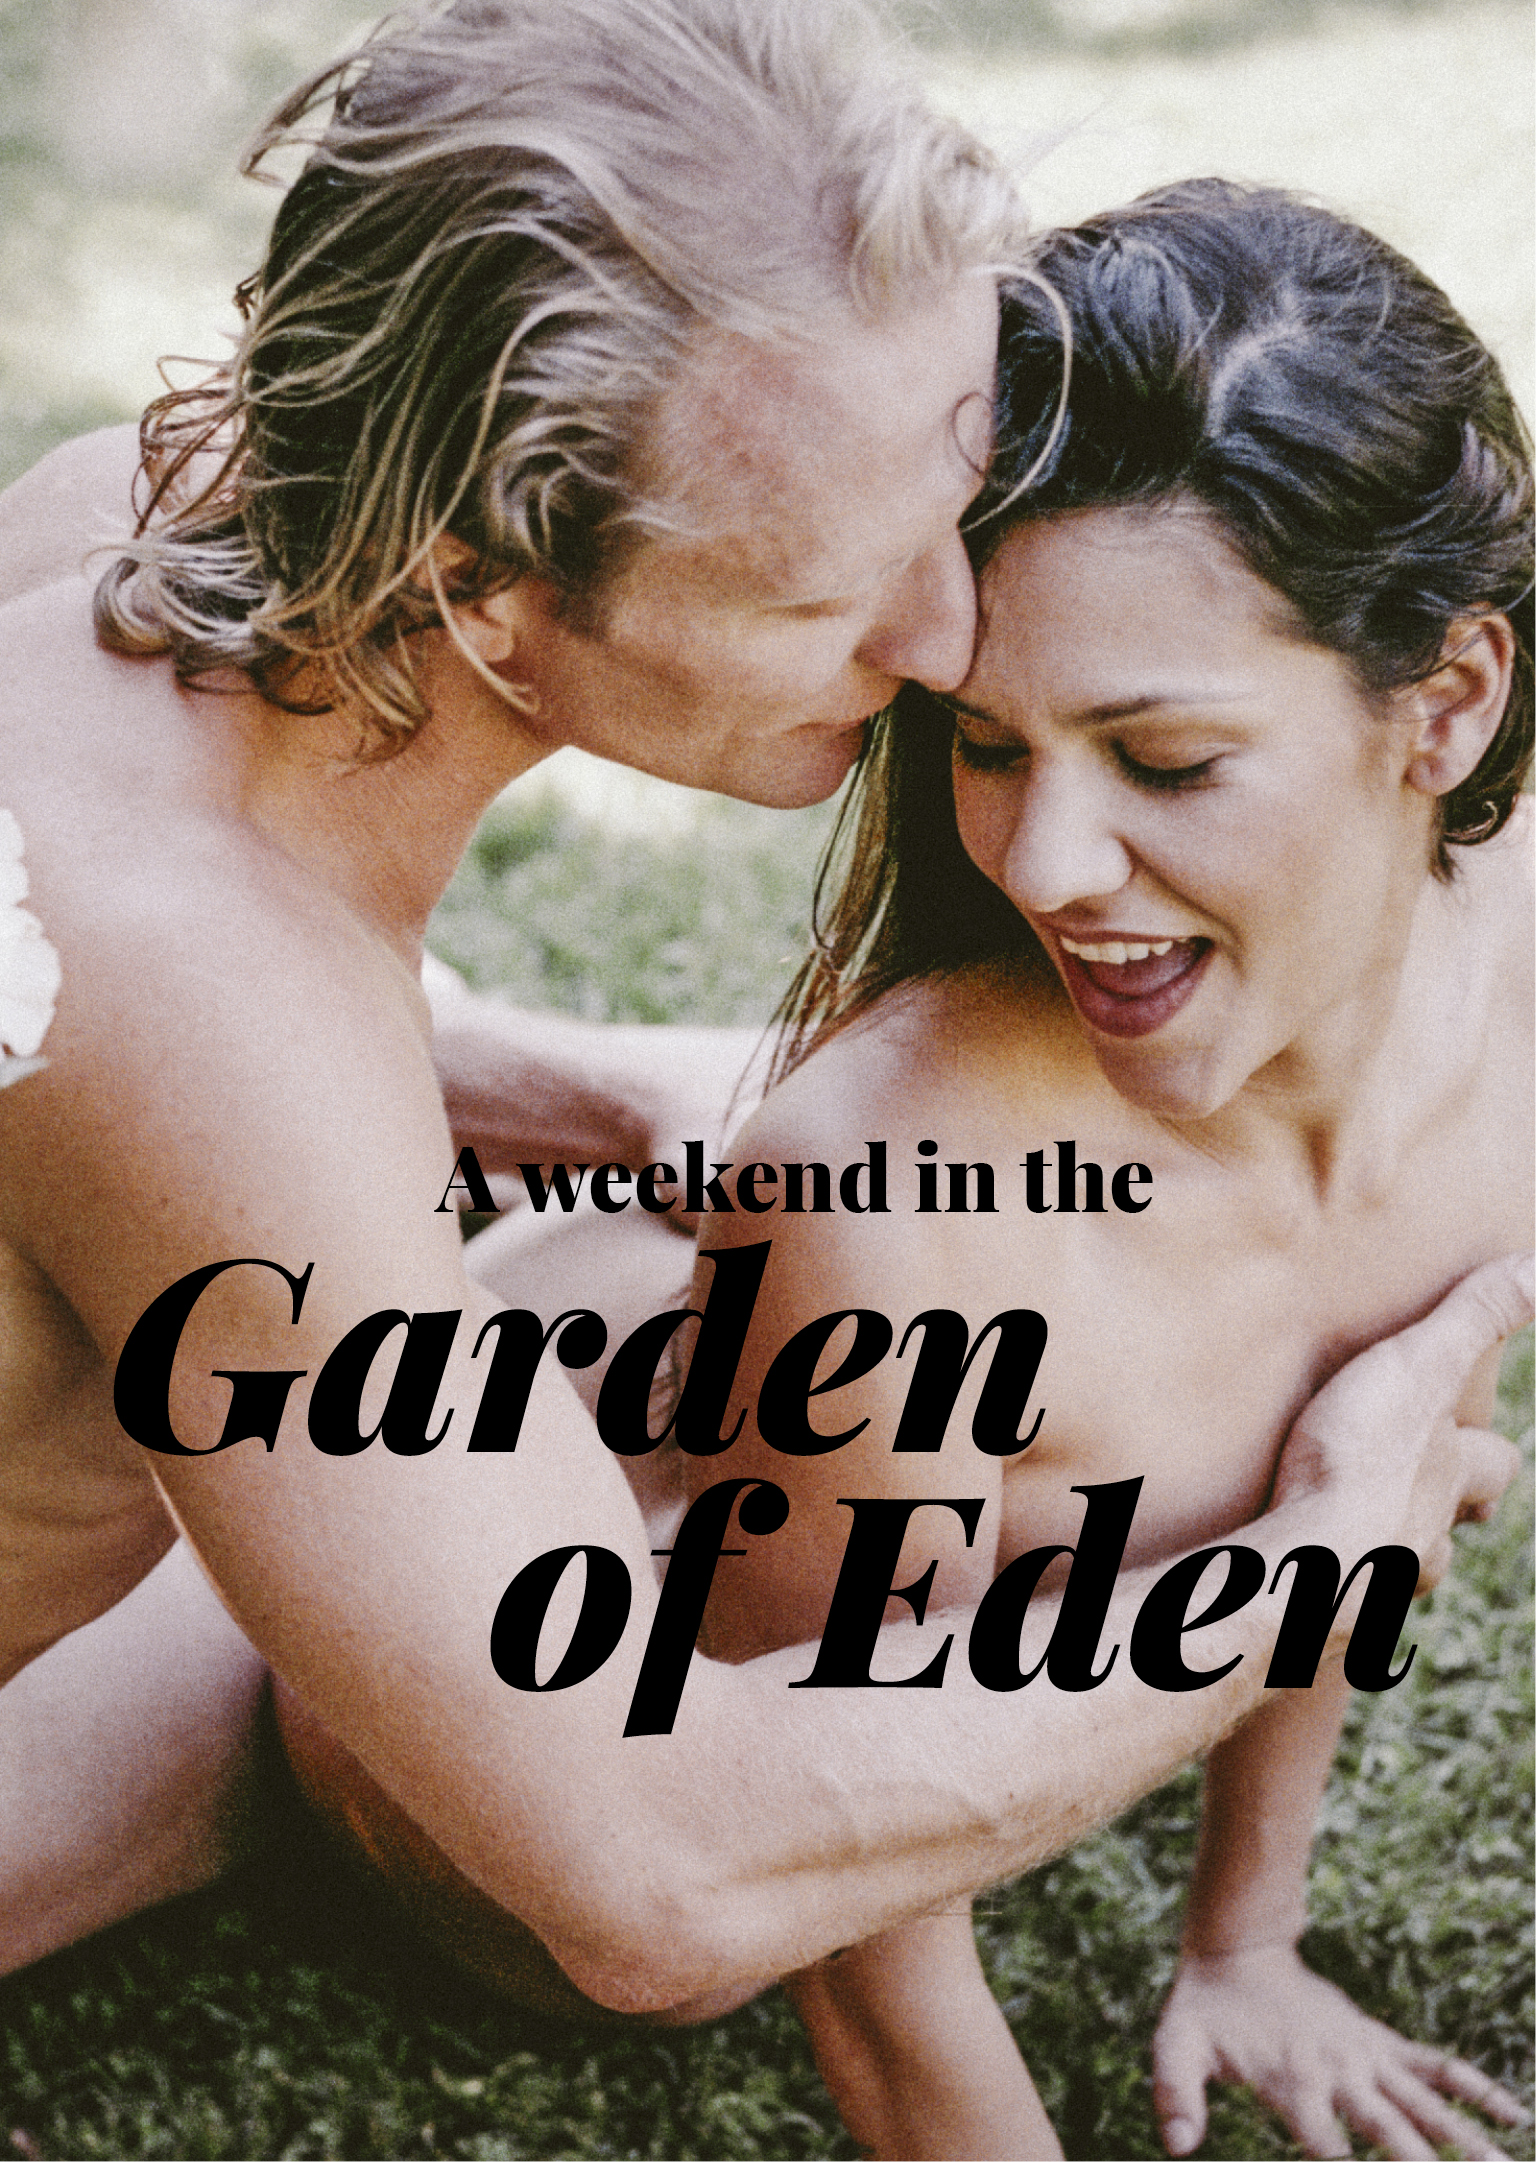 Xconfessions By Erika Lust, A Weekend In The Garden Of Eden